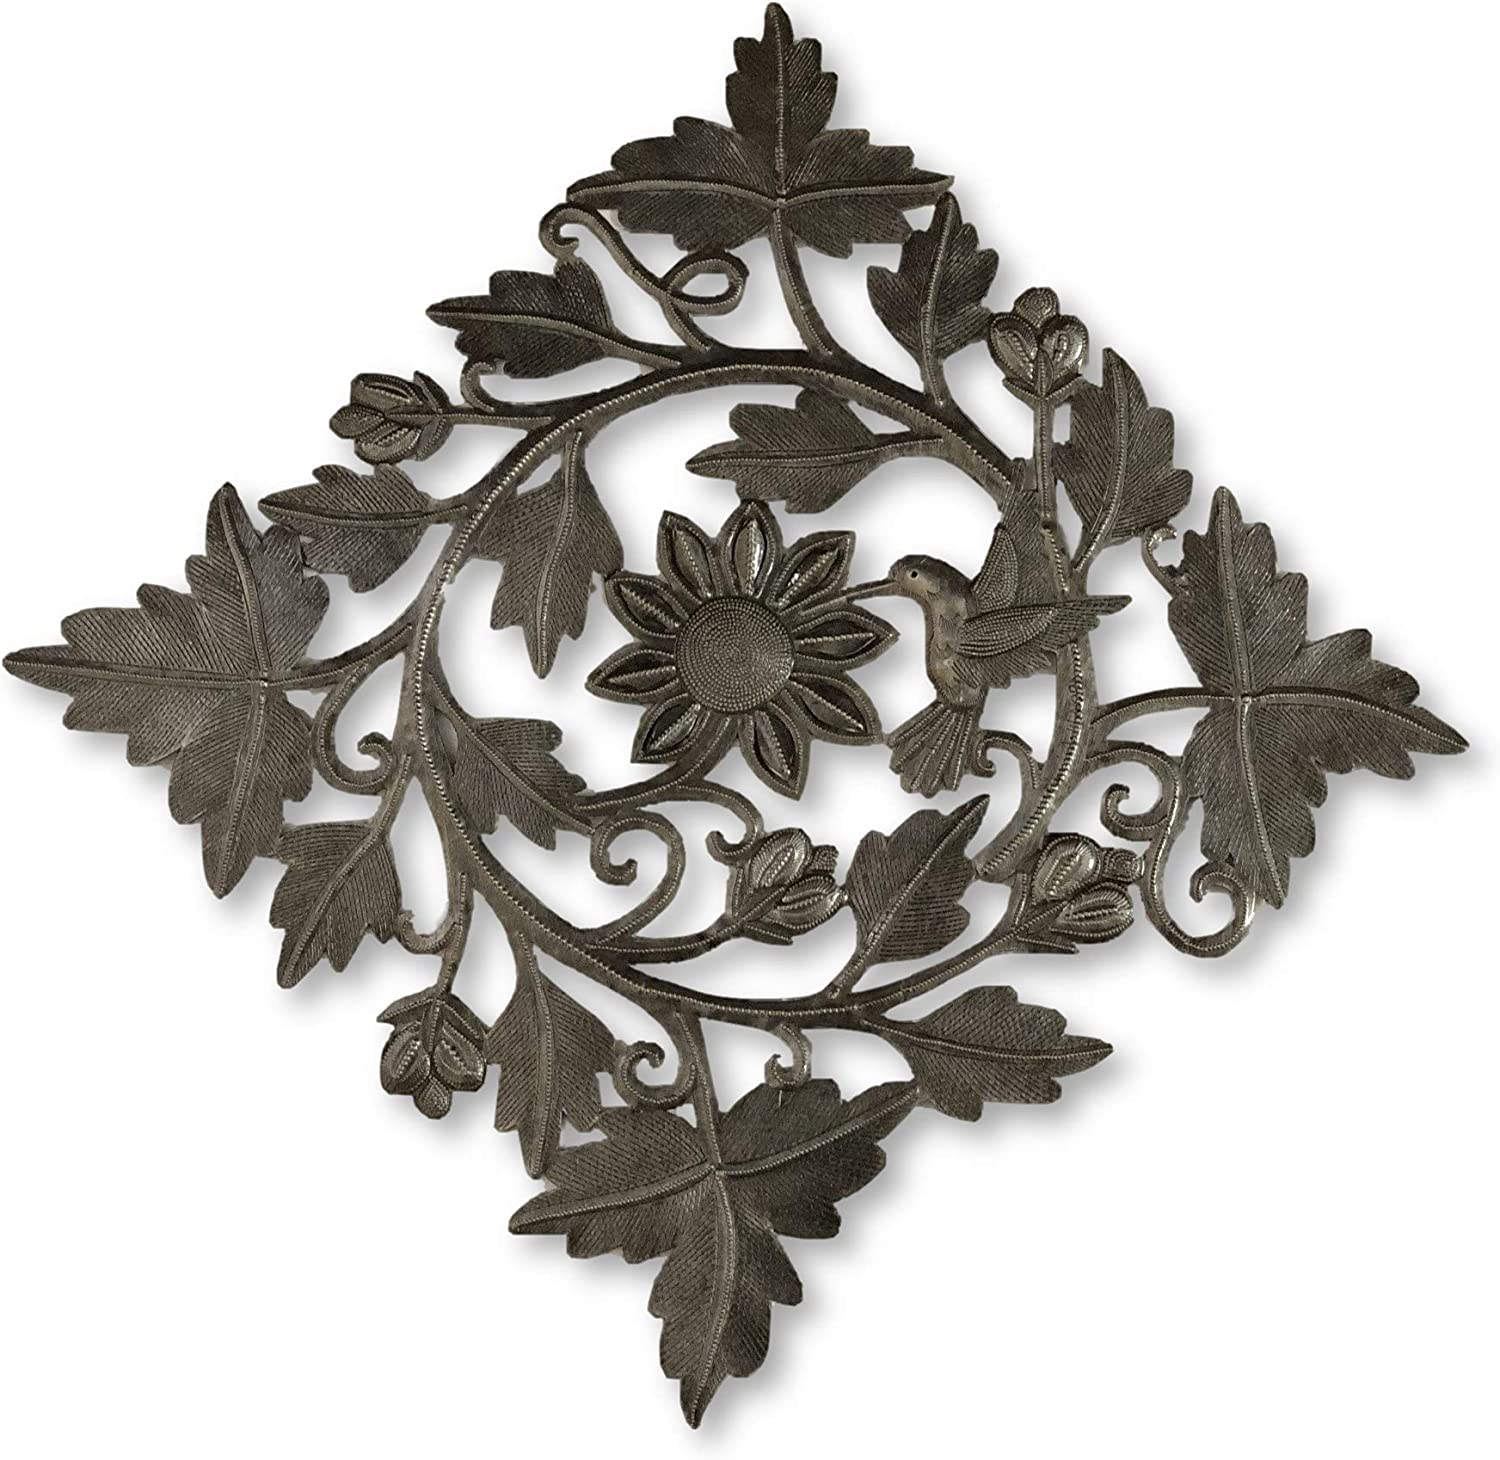 Handmade in Haiti x 16.5 in. Floral Garland with Hummingbird Spring Indoor and Outdoor Wall Decor Haitian Metal Wall Art 16 in